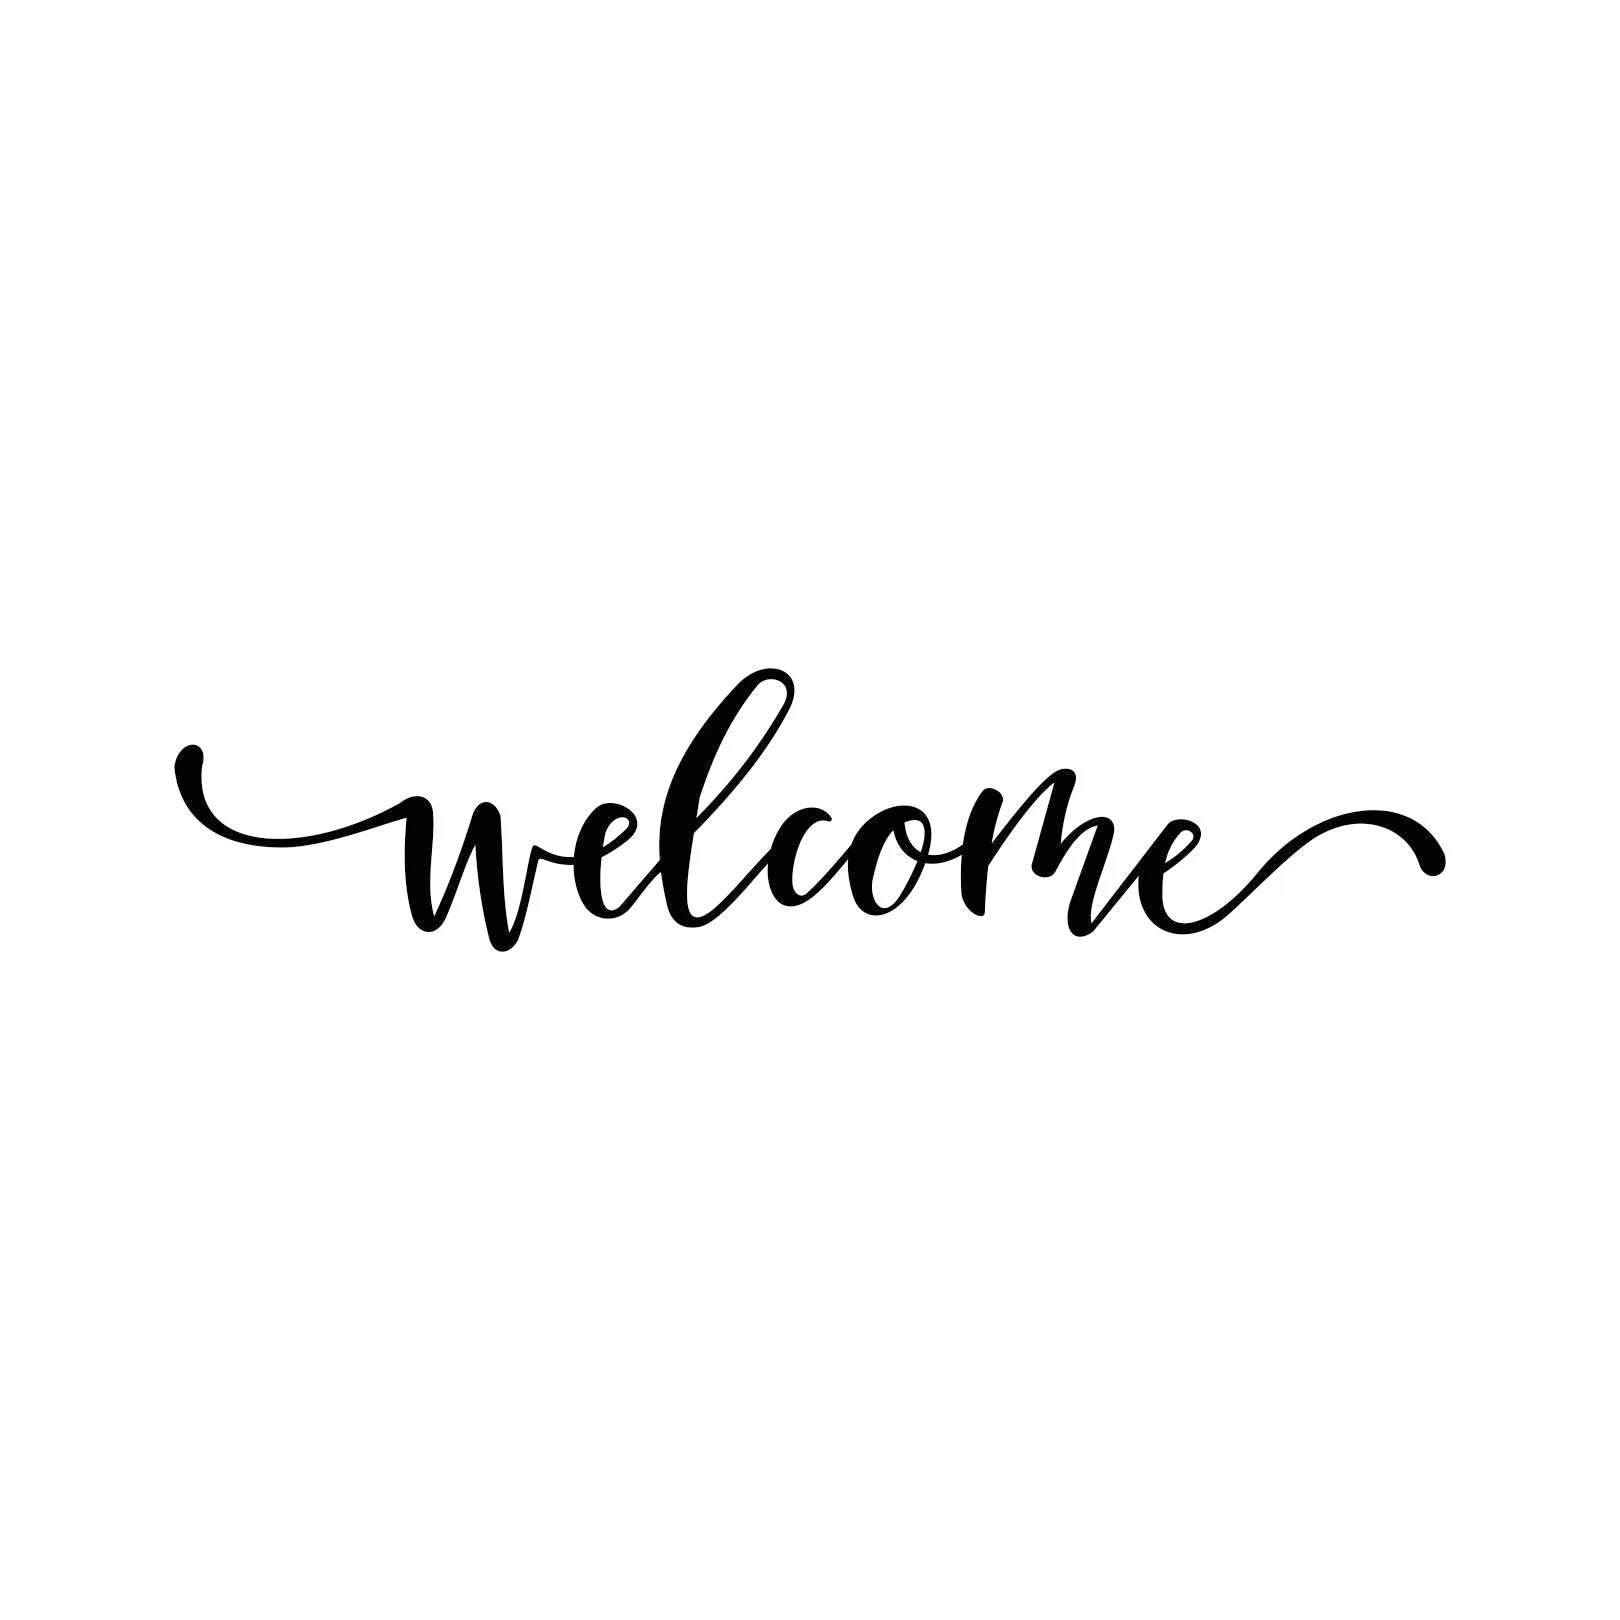 Welcome Word Phrase Graphics SVG Dxf EPS Png Cdr Ai Pdf Vector Etsy